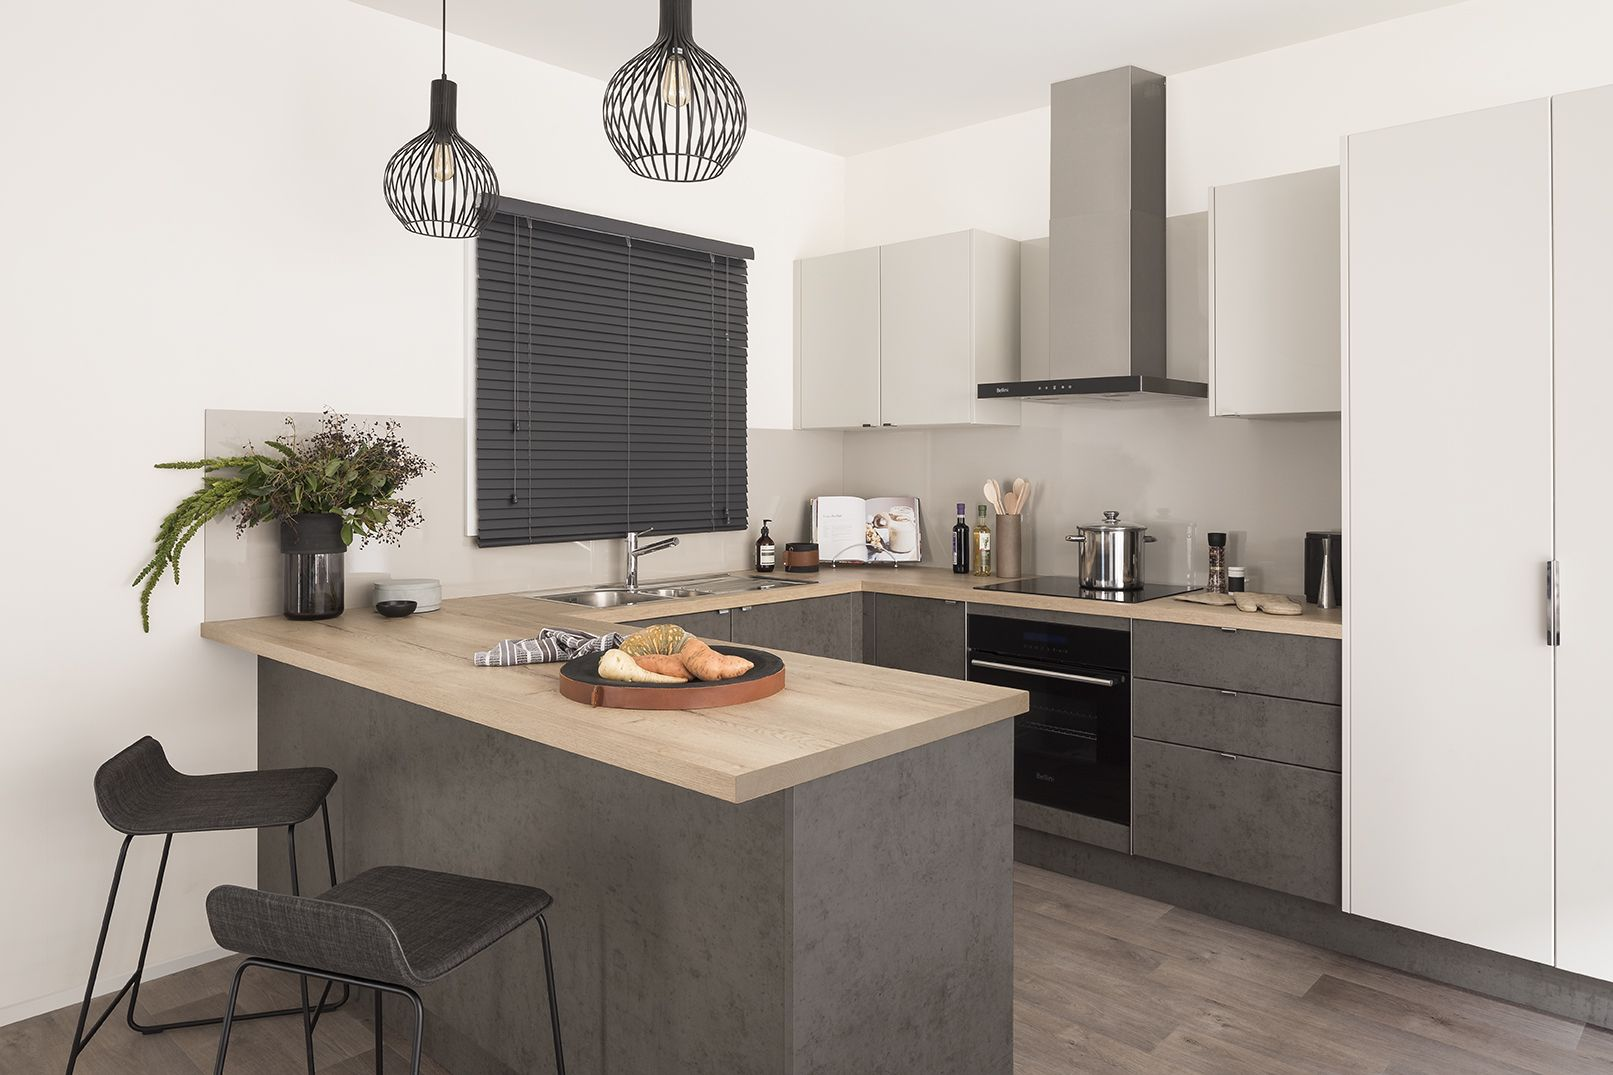 https www kaboodle com au inspiration gallery earthy opulence kitchen inspirations kitchen on kaboodle kitchen design id=26002